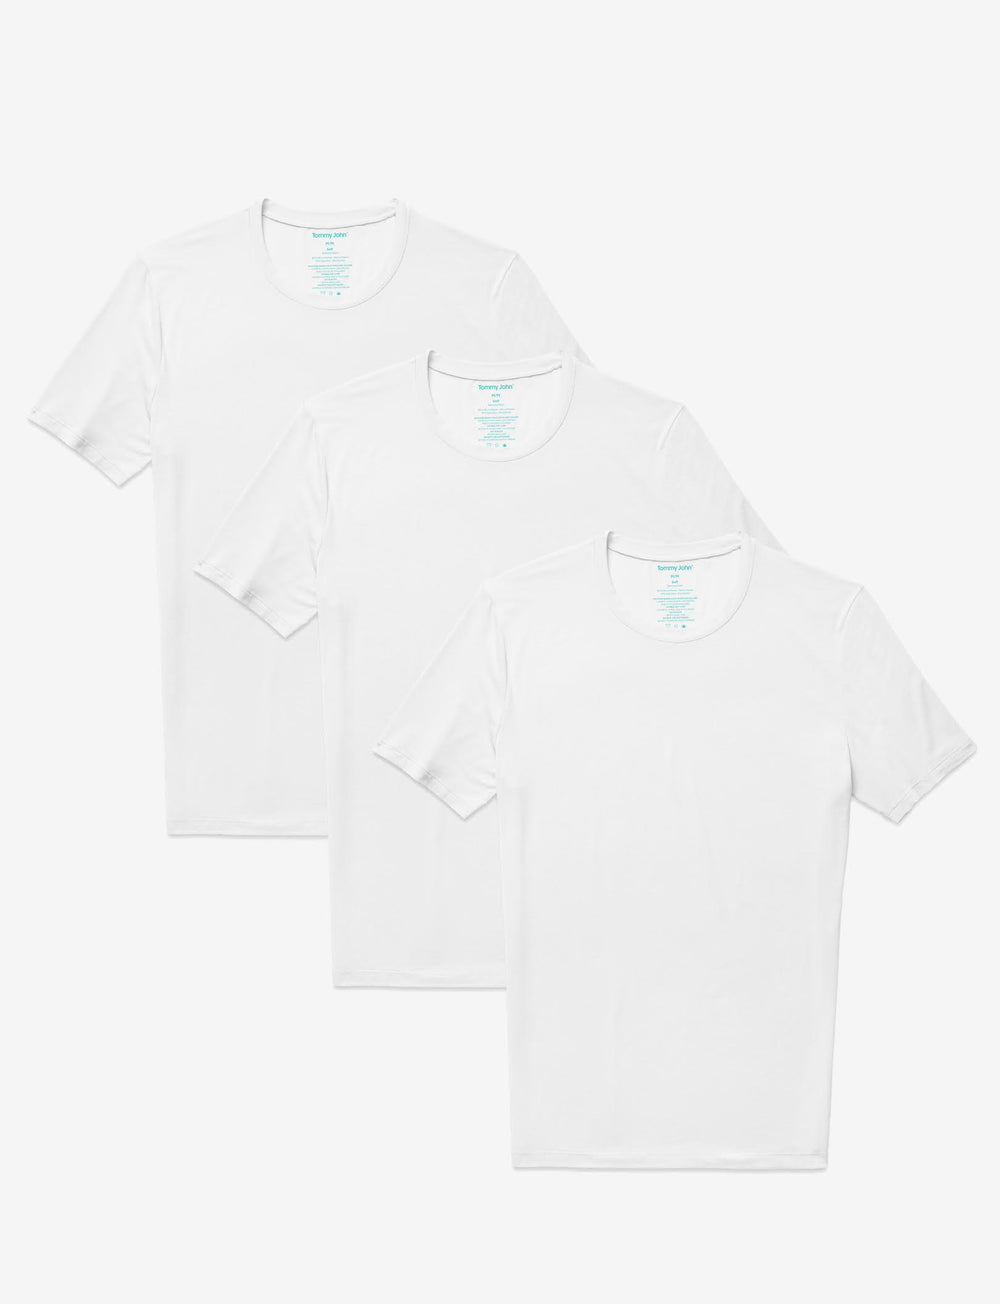 Second Skin Crew Neck Undershirt 3 Pack Details Image